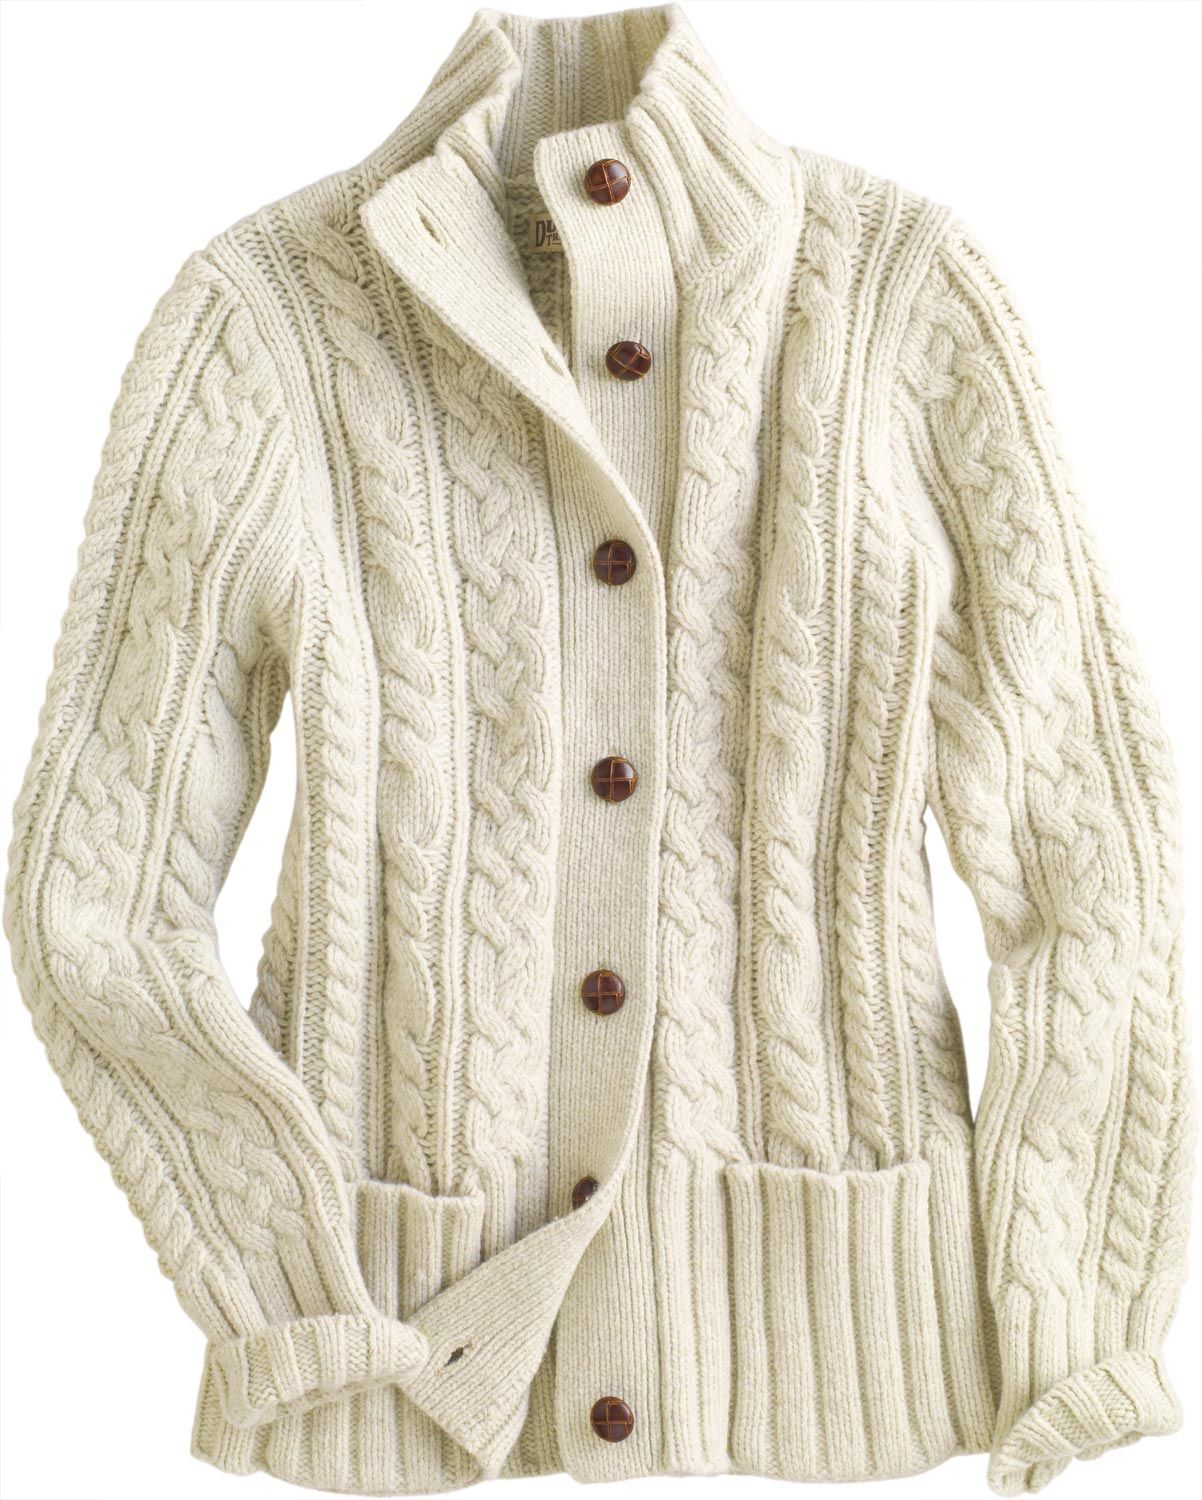 The women's Fisherman's Cardigan Sweater from Duluth ...